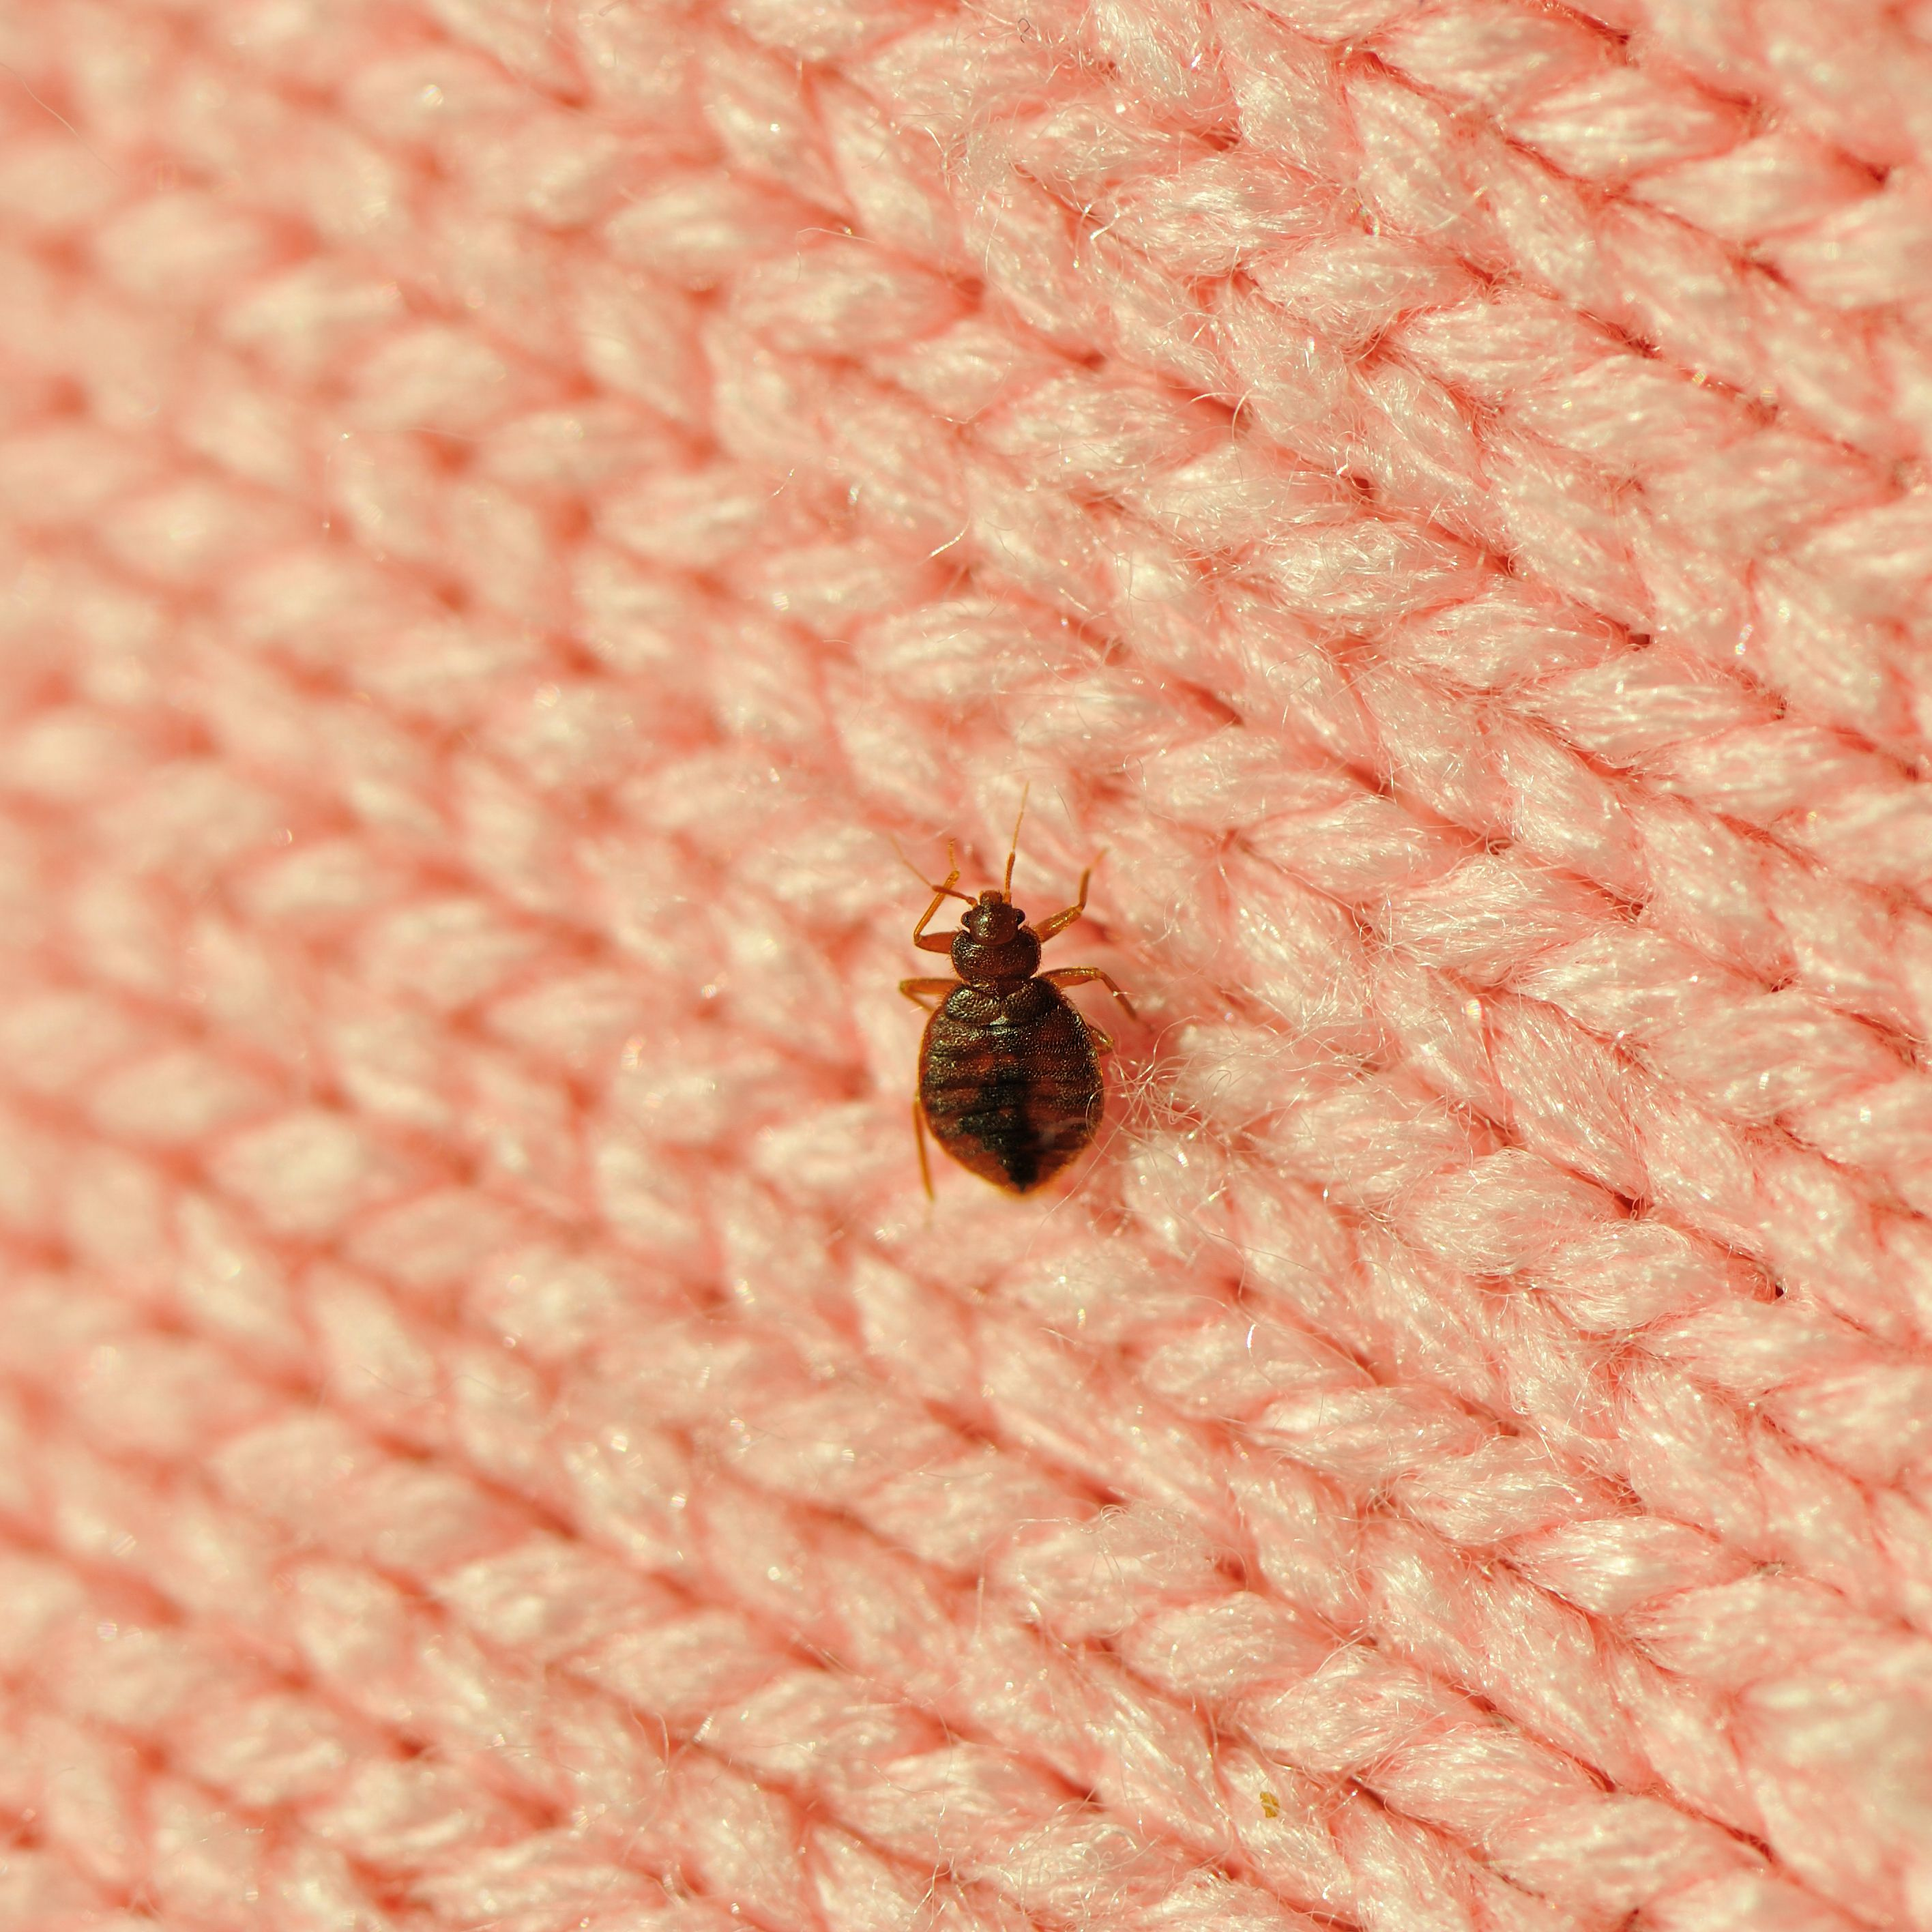 How To Treat Bed Bugs In Furniture